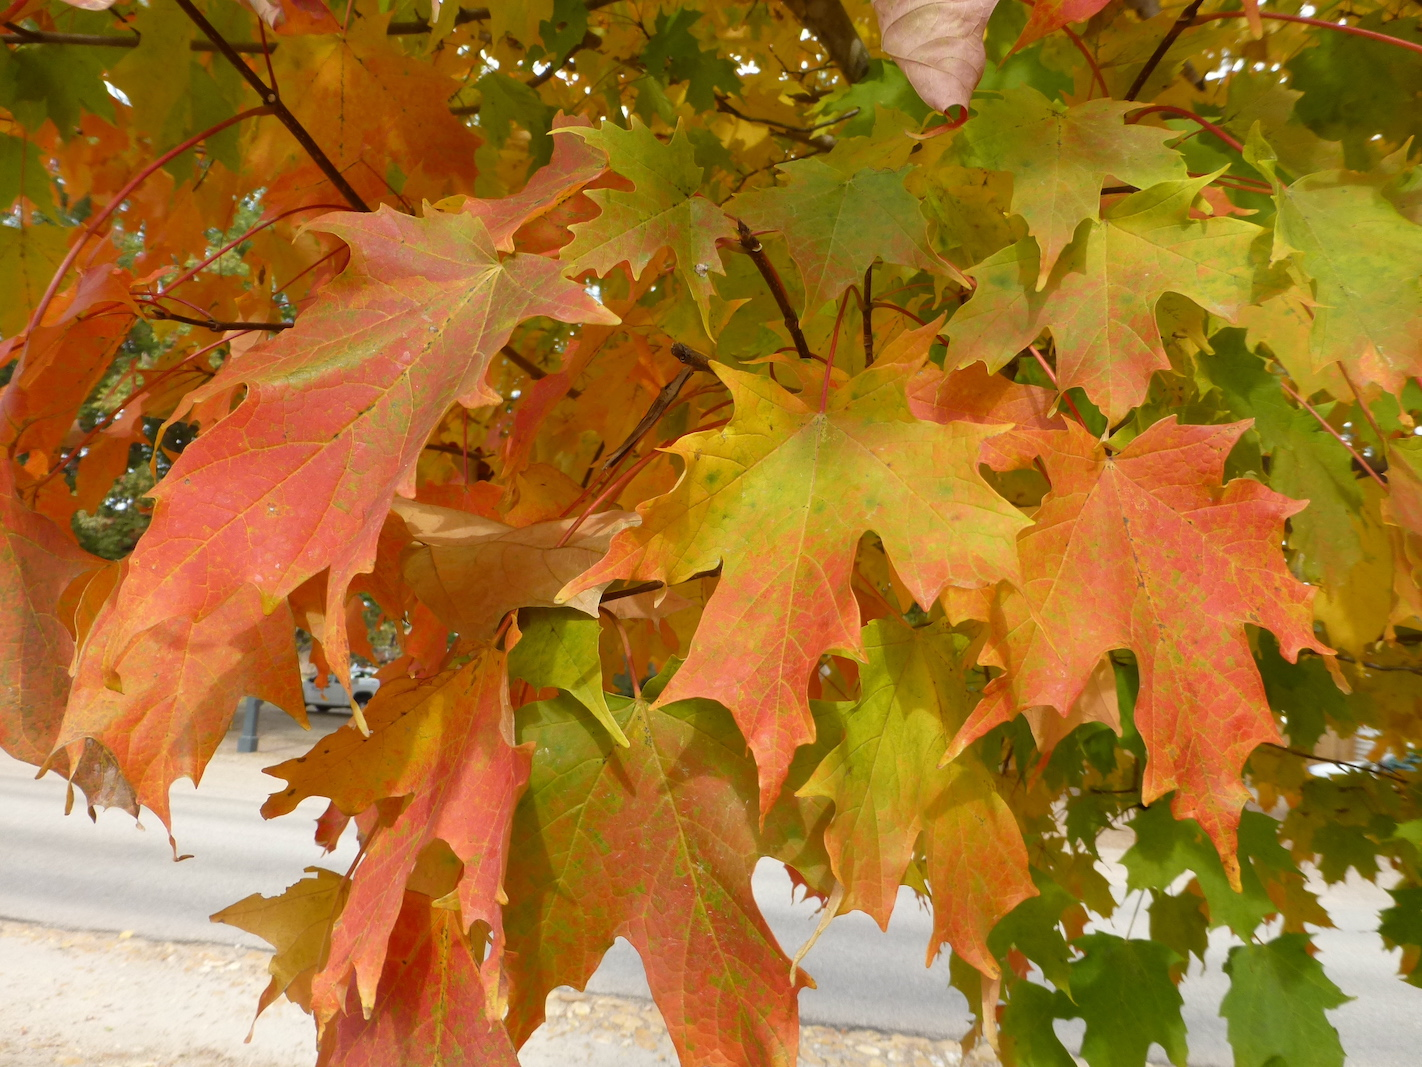 The Scientific Name is Acer saccharum. You will likely hear them called Northern Sugar Maple, Hard Maple, Sugar Tree. This picture shows the A cultivated specimen at Colonial Williamsburg, VA of Acer saccharum